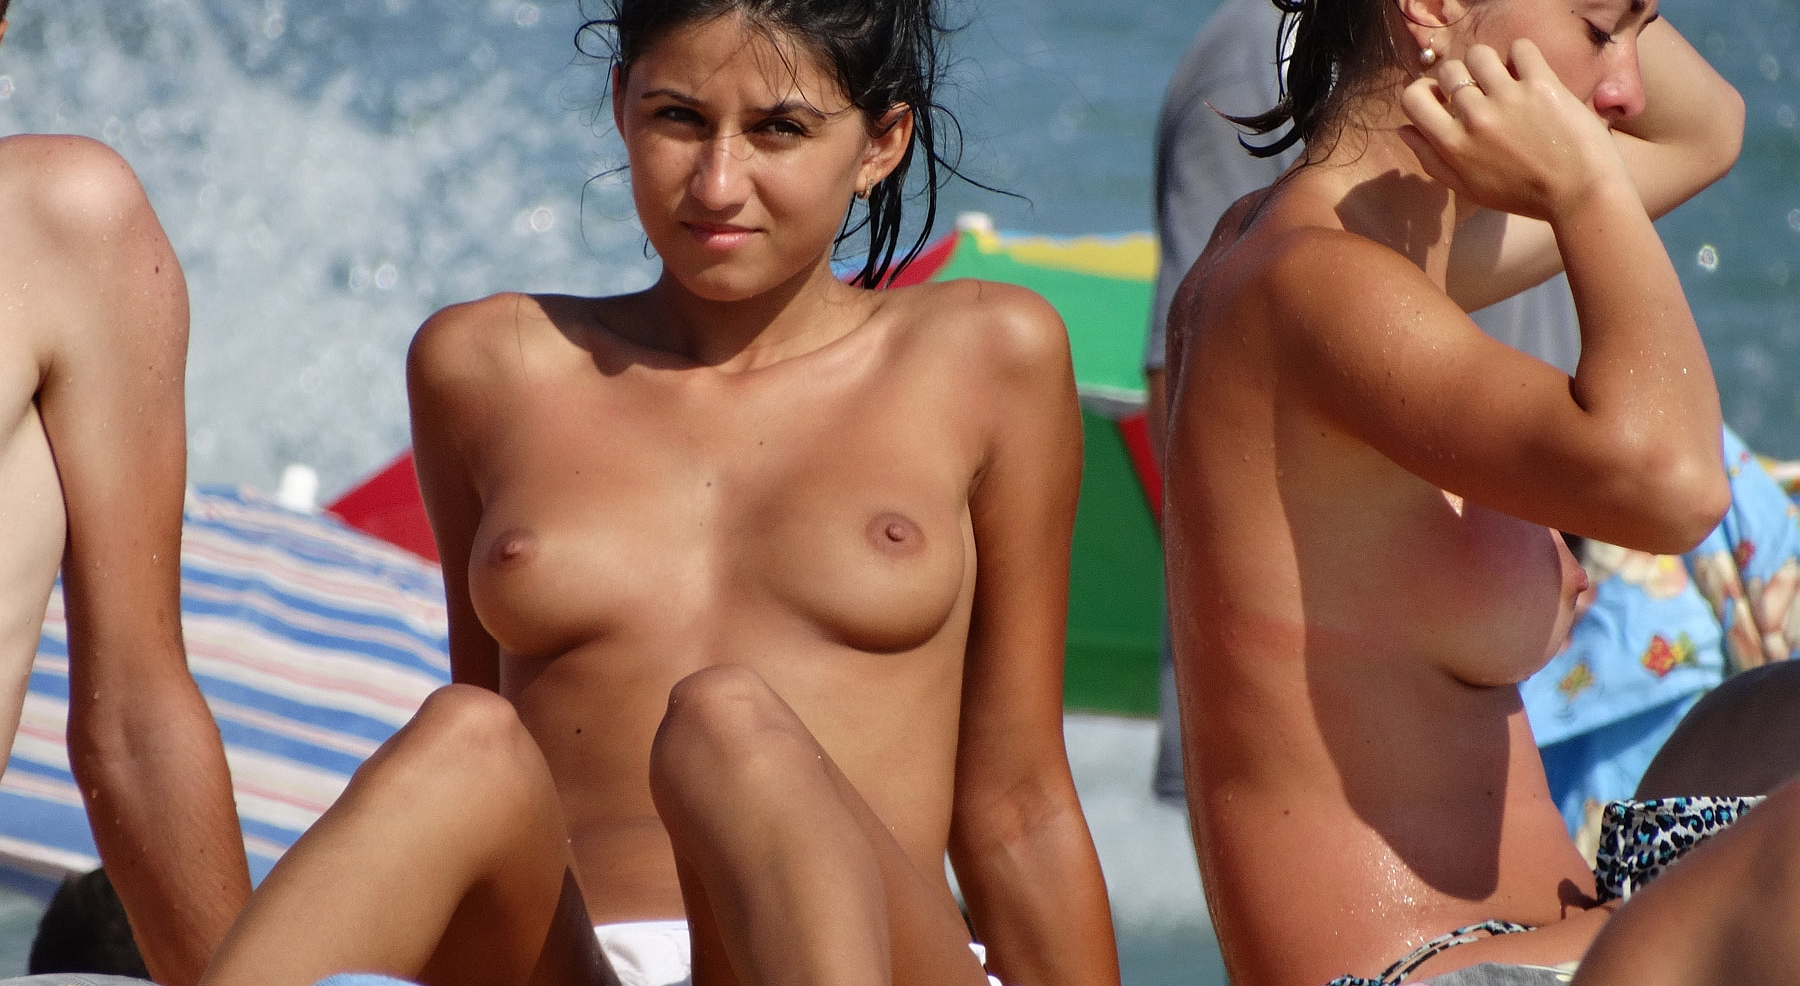 Innocent amature nudists